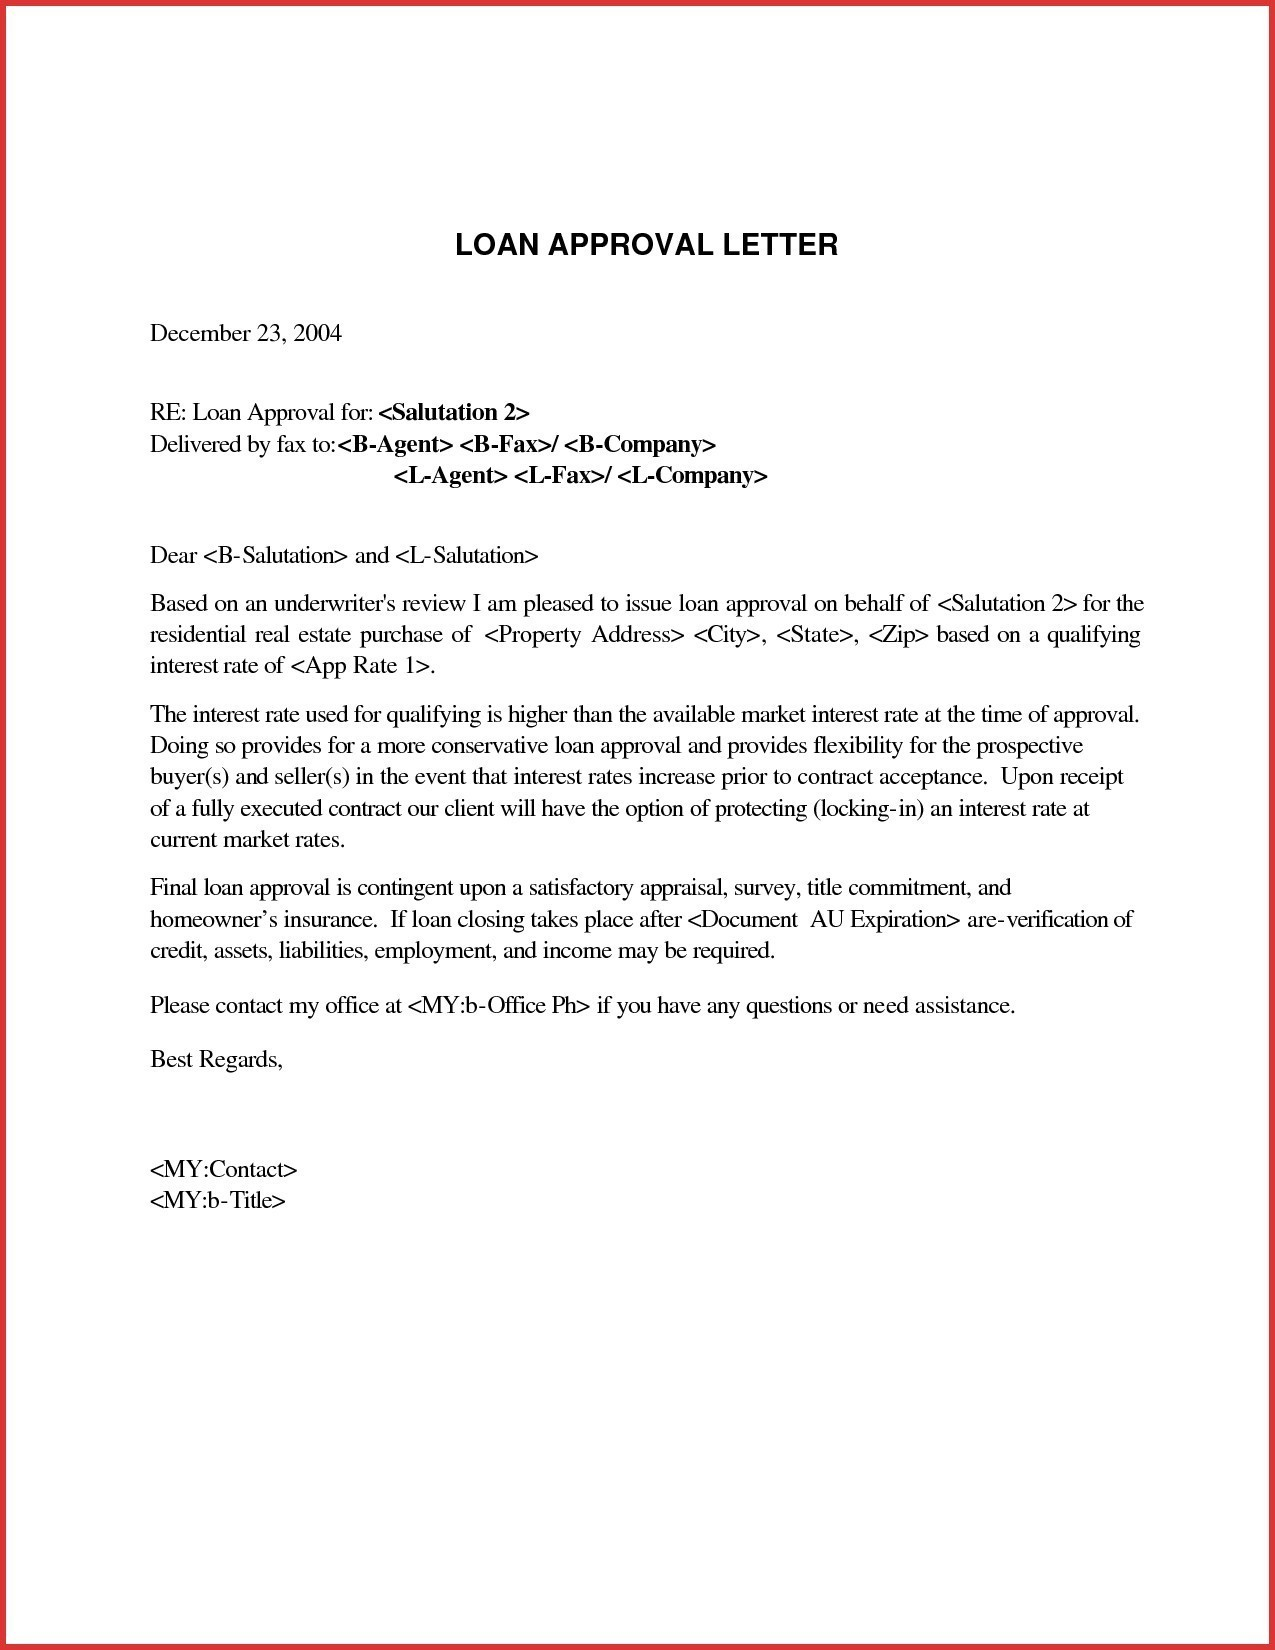 Loan Approval Letter Template - Letter format for Loan Request From Employer New Loan Request Letter